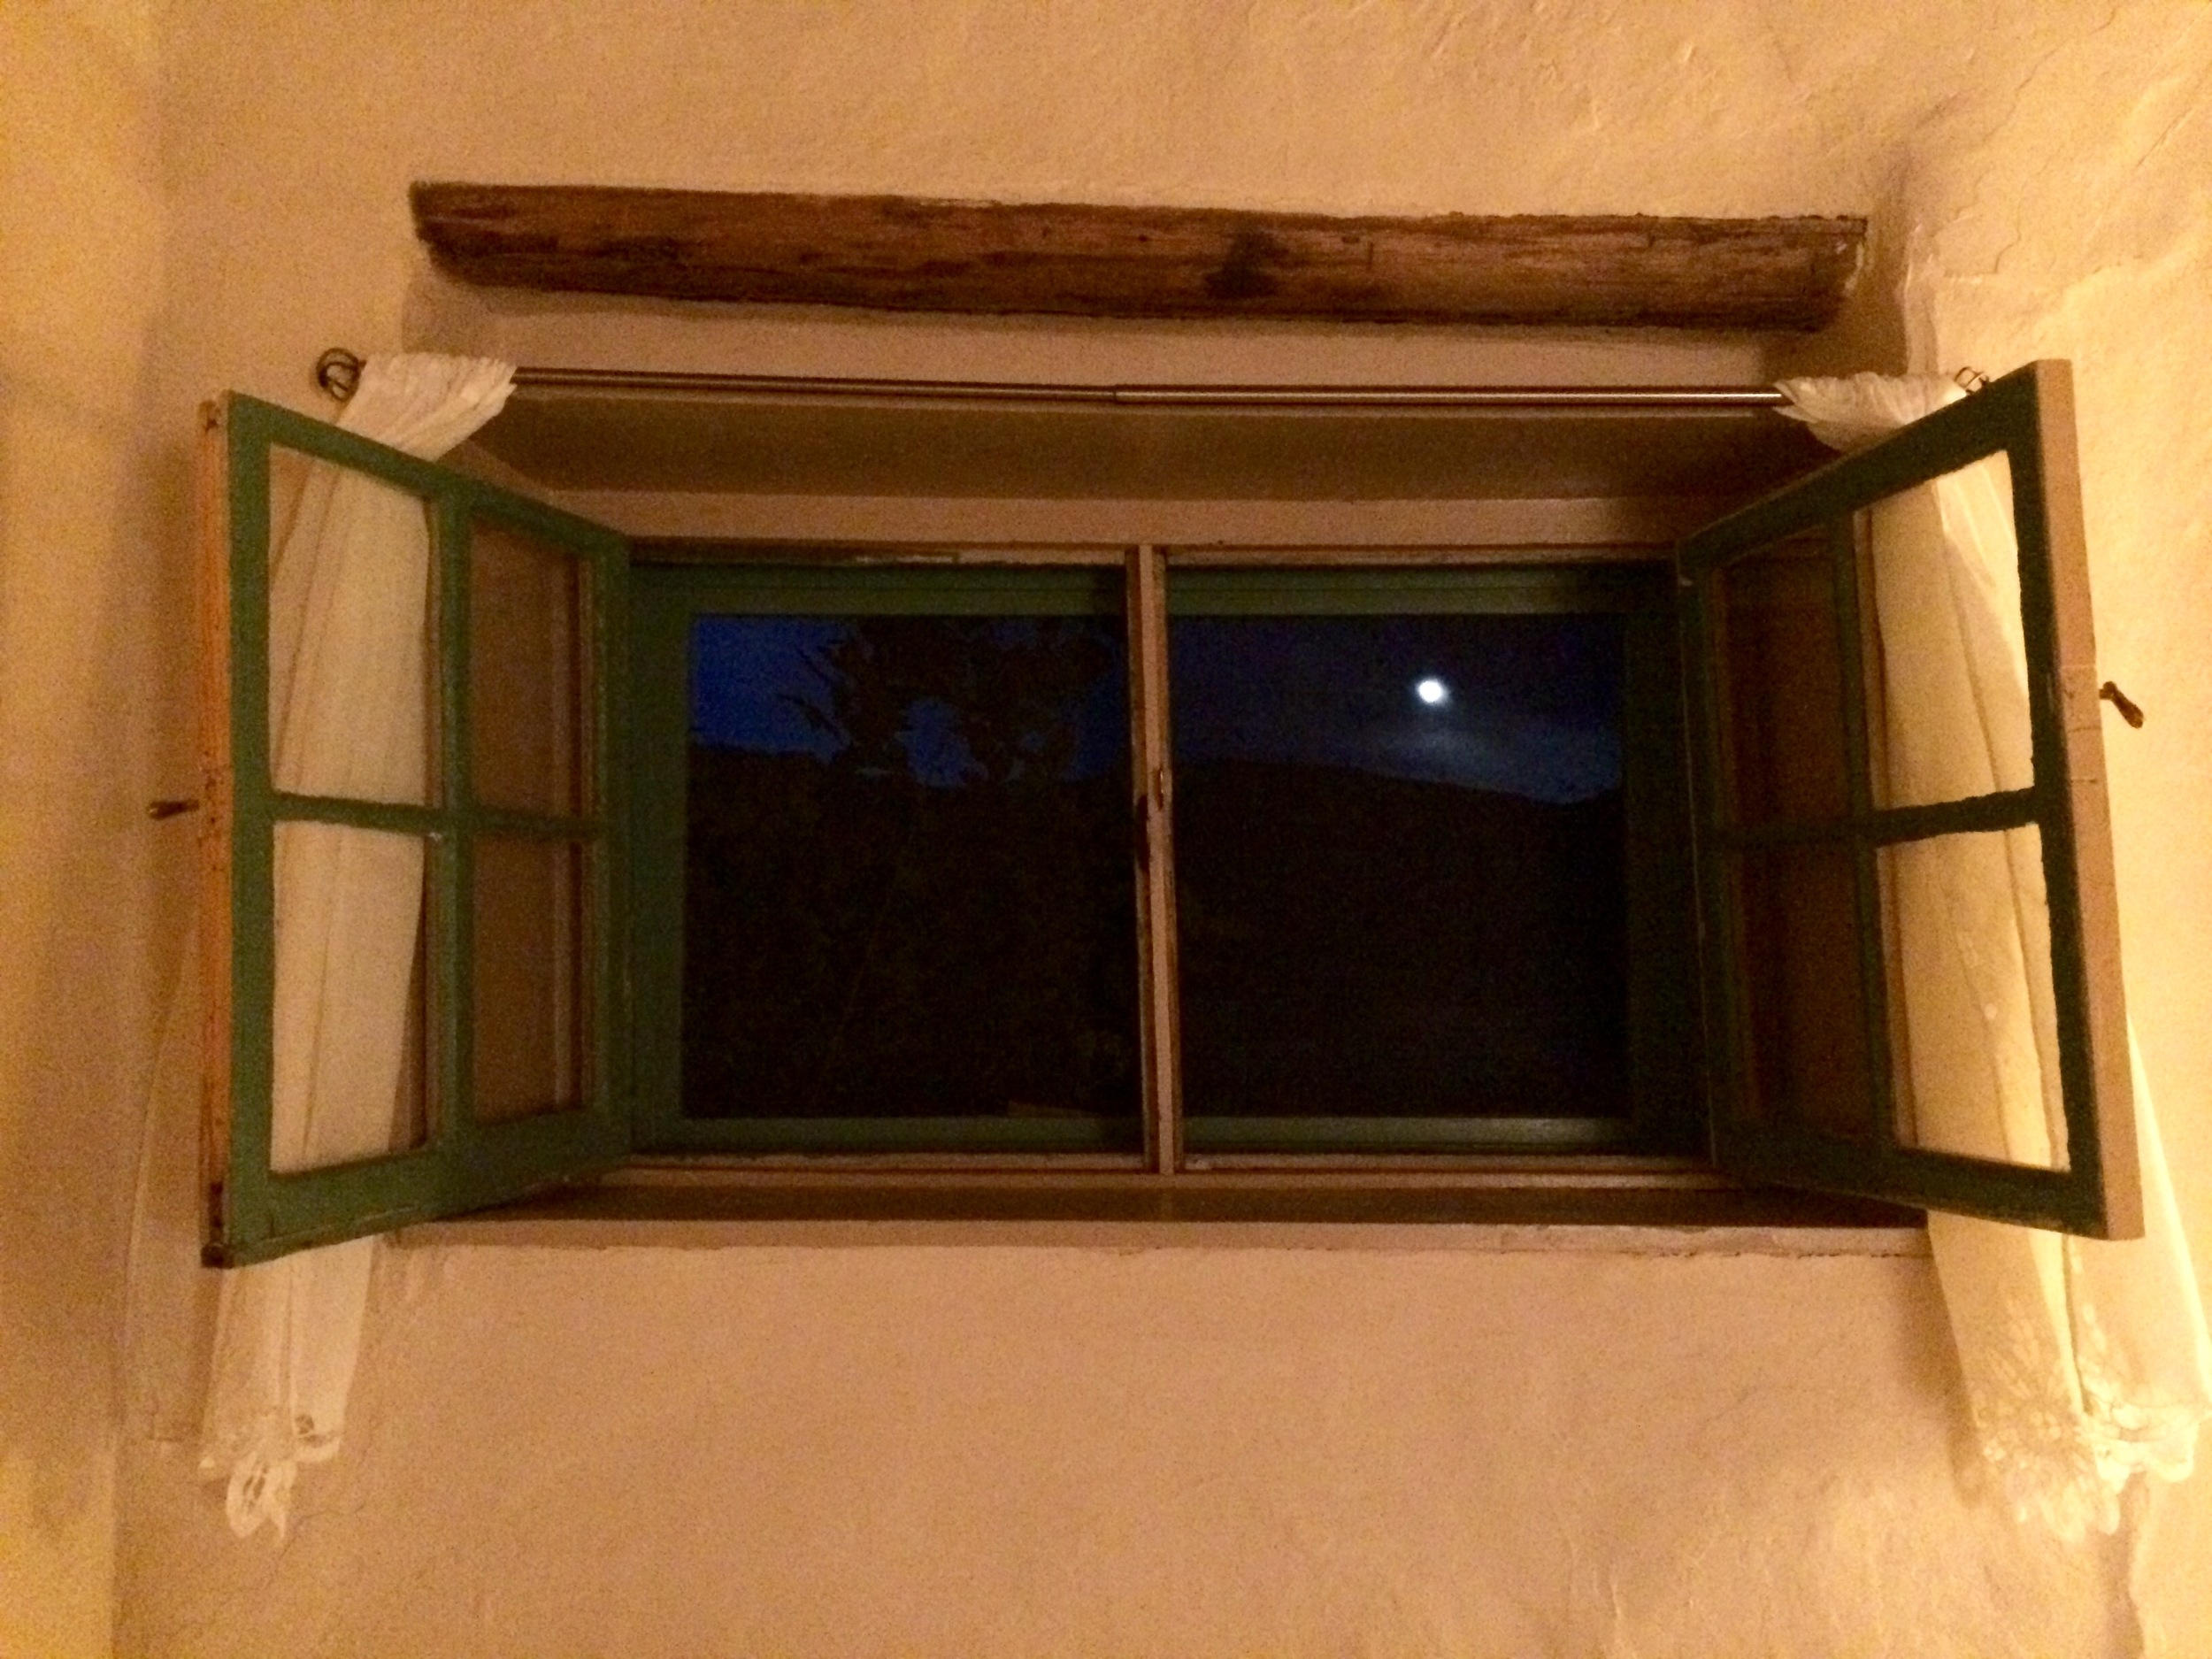 Full moon over Taos Mountain, from Georgia O'Keeffe's room in the Mabel Dodge Luhan House.